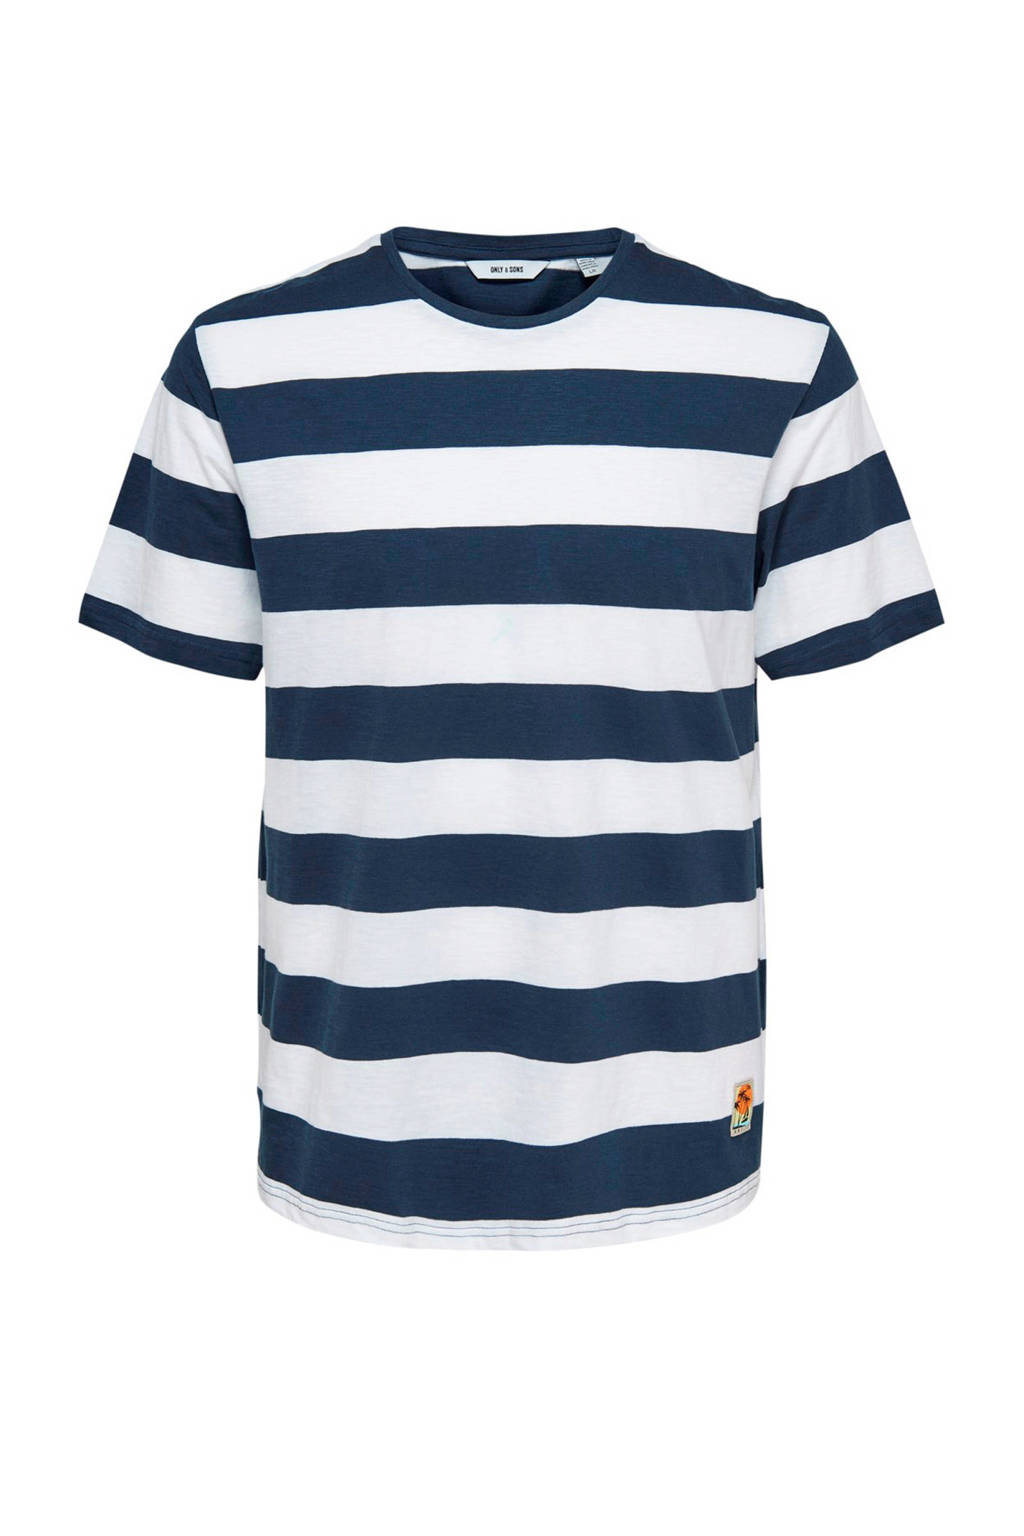 Only & Sons T-shirt met strepen, Donkerblauw/wit